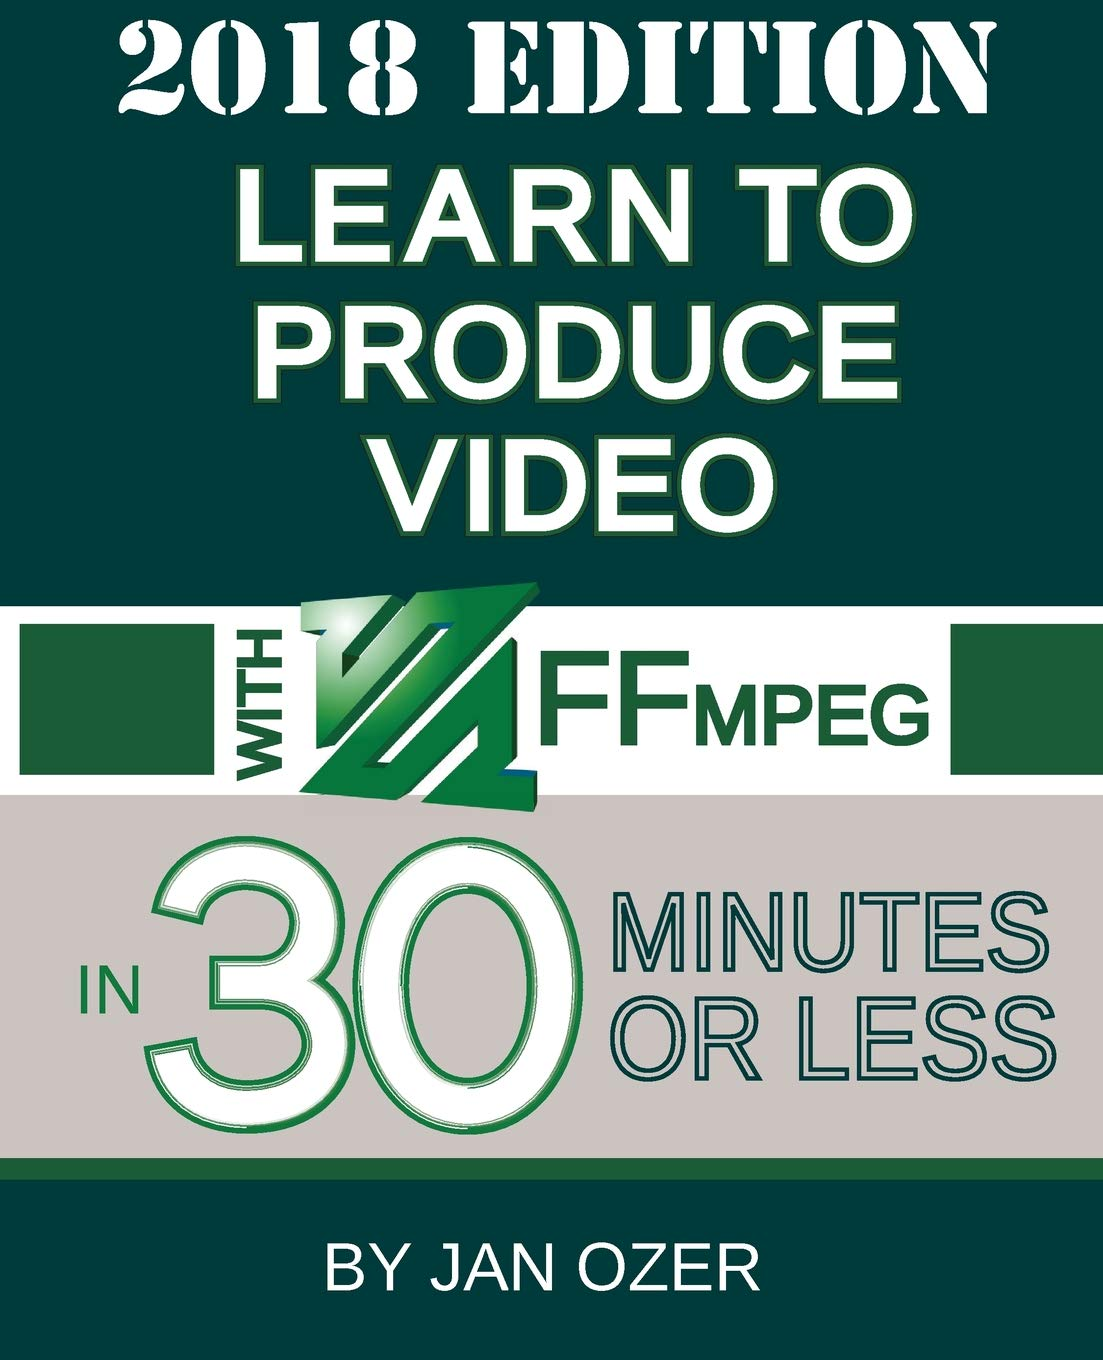 Learn to Produce Video with Ffmpeg: In Thirty Minutes or